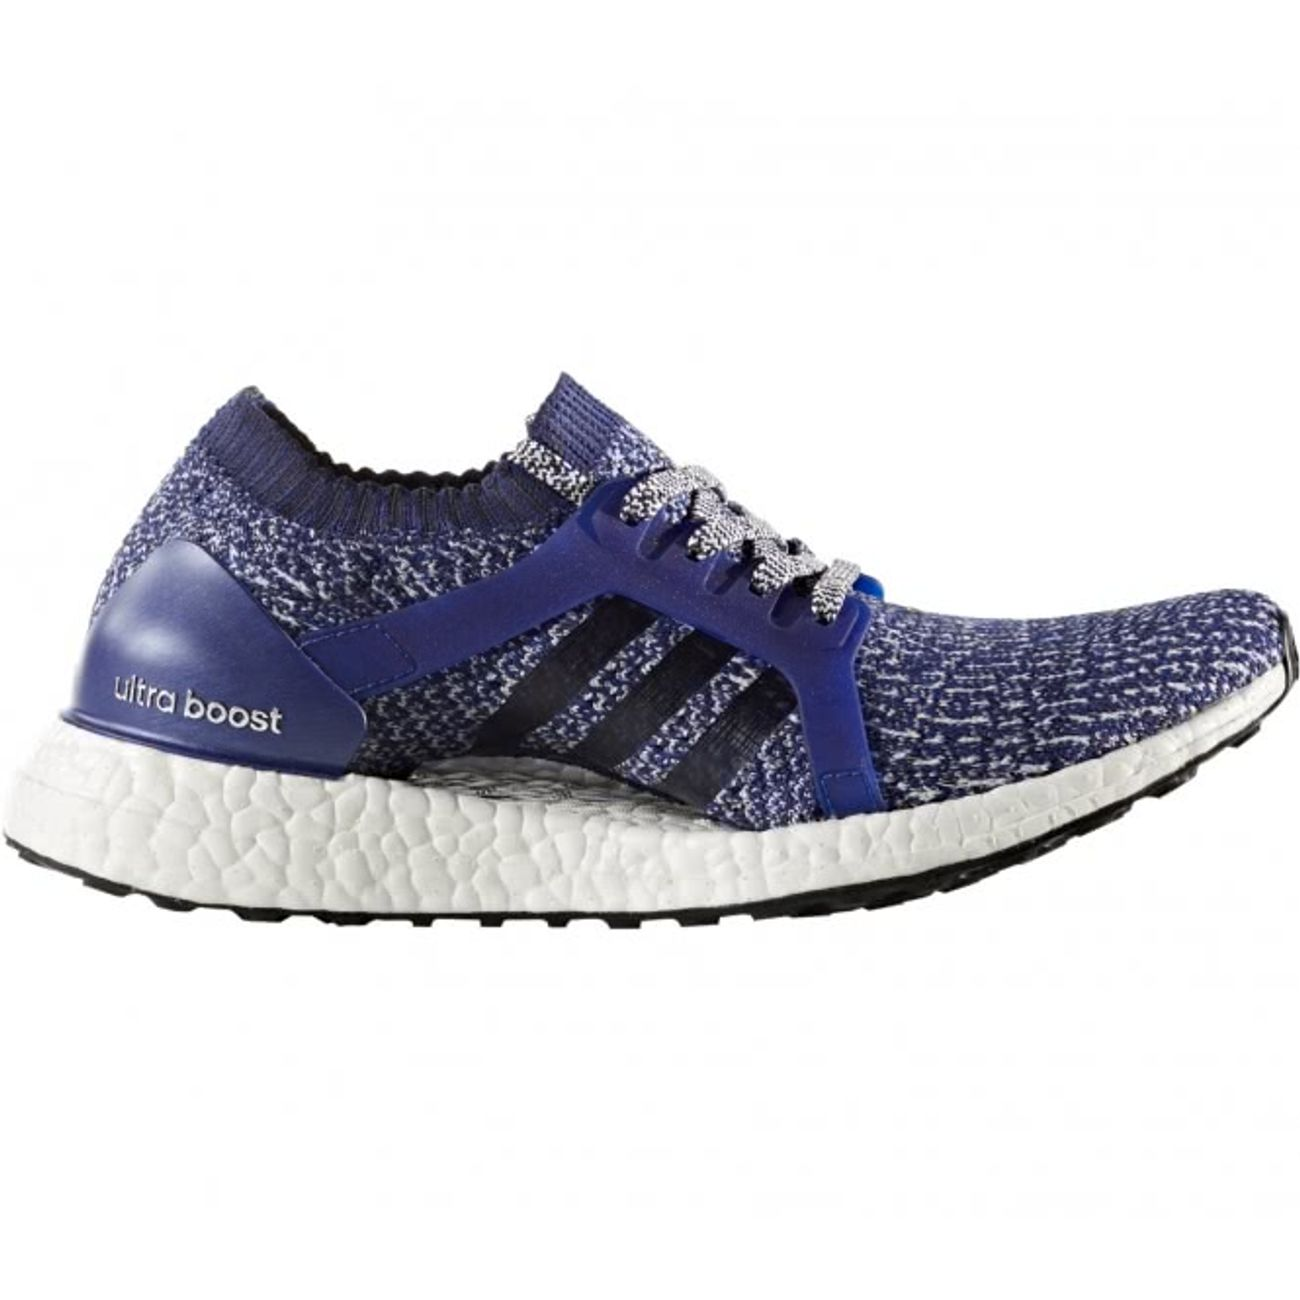 huge selection of 63e67 cfc7c ... coupon code for running femme adidas adidas ultra boost x chaussures de  running pour femmes gris